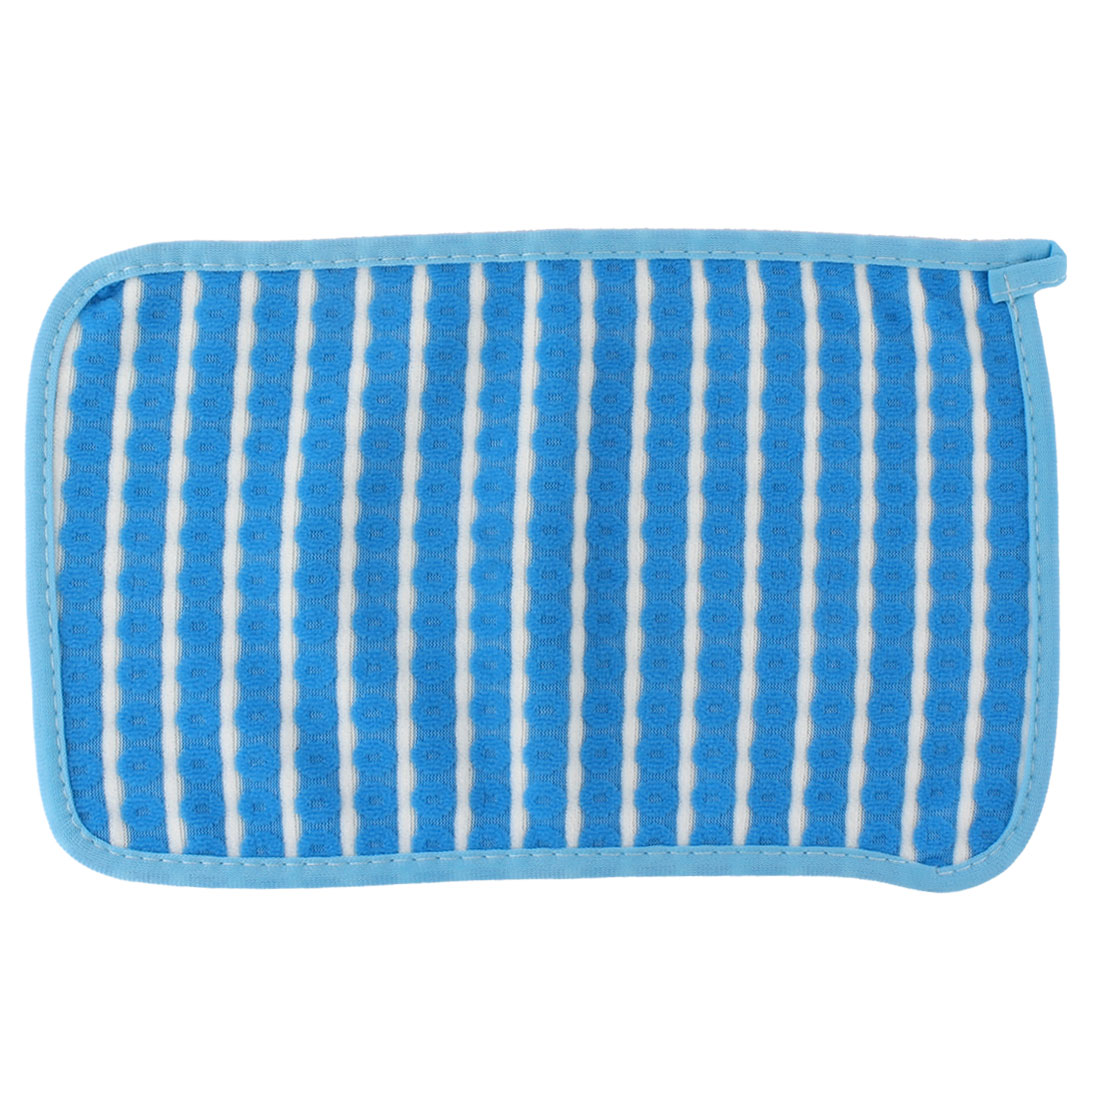 Home Kitchenware Rectangle Design Bowl Pot Dish Scrub Wiping Cleaning Cloth Blue